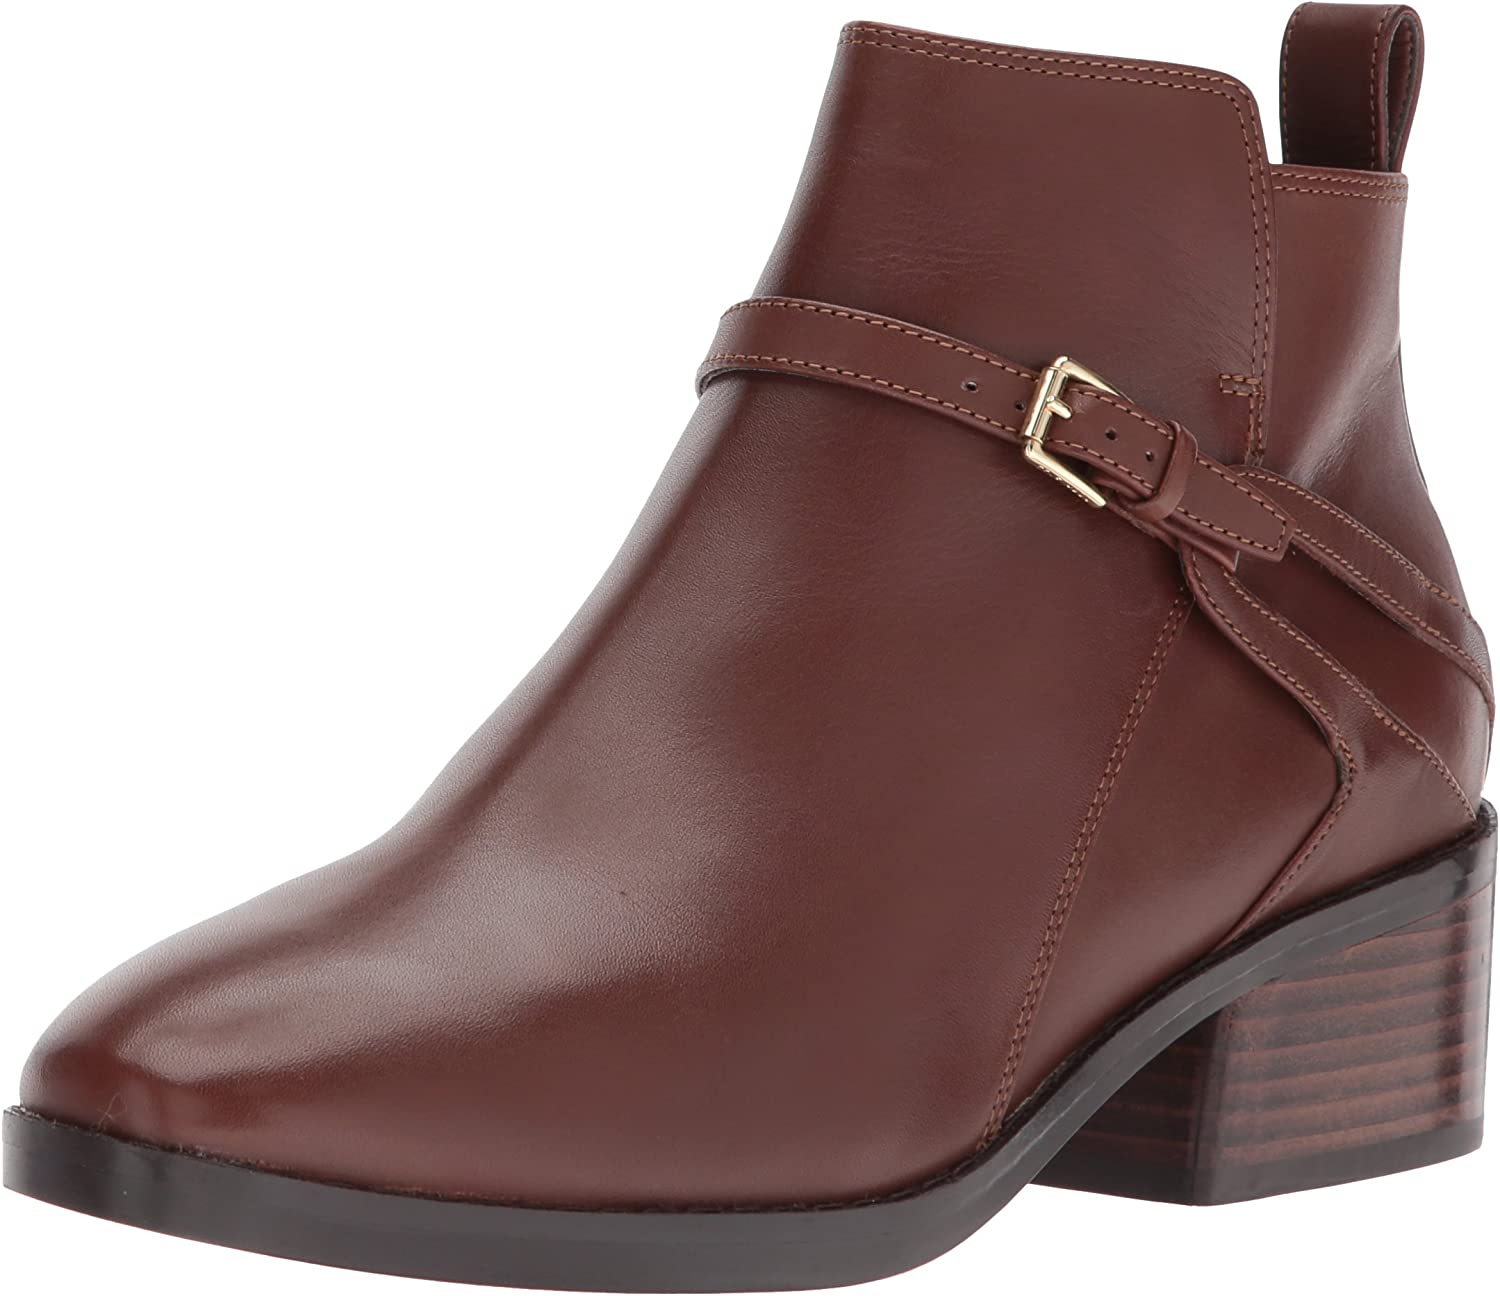 Cole Haan Womens Etta Bootie Ii Ankle Boot